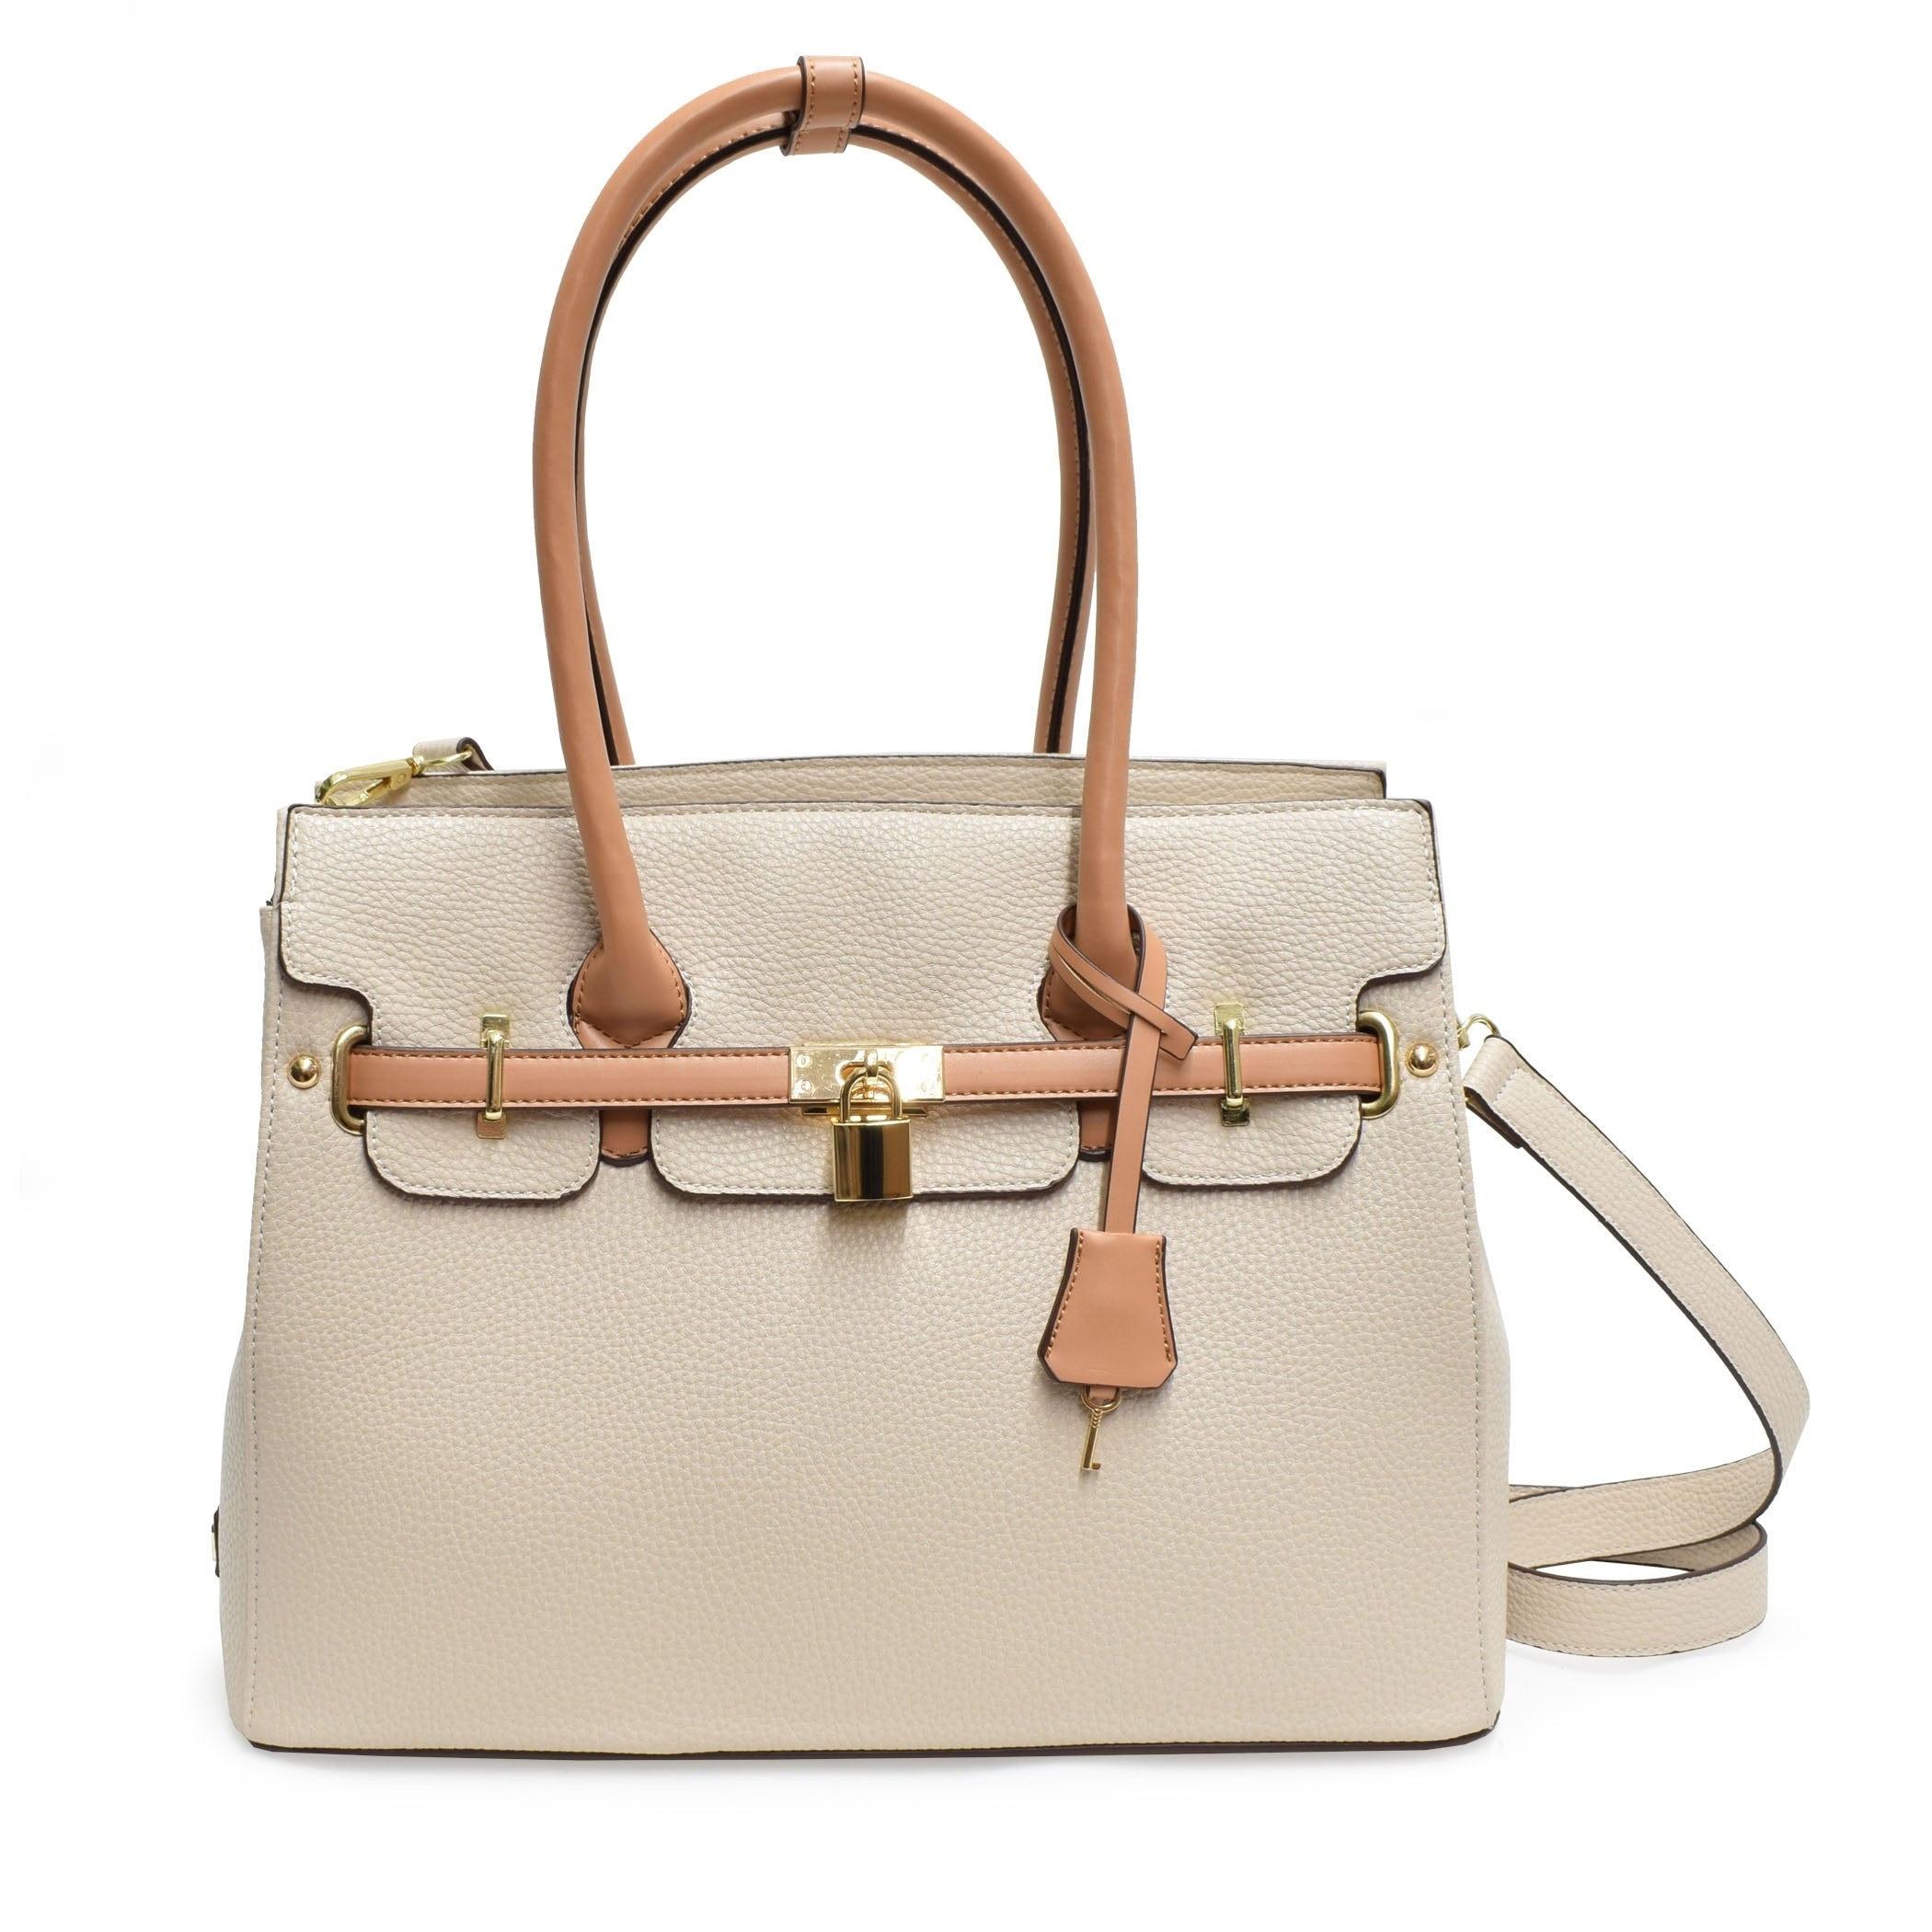 86b96bcb44 Shop Adrienne Vittadini Triple Compartment Kelly Collection Pebble Grain  Birkin Bag - Free Shipping Today - Overstock - 26451619